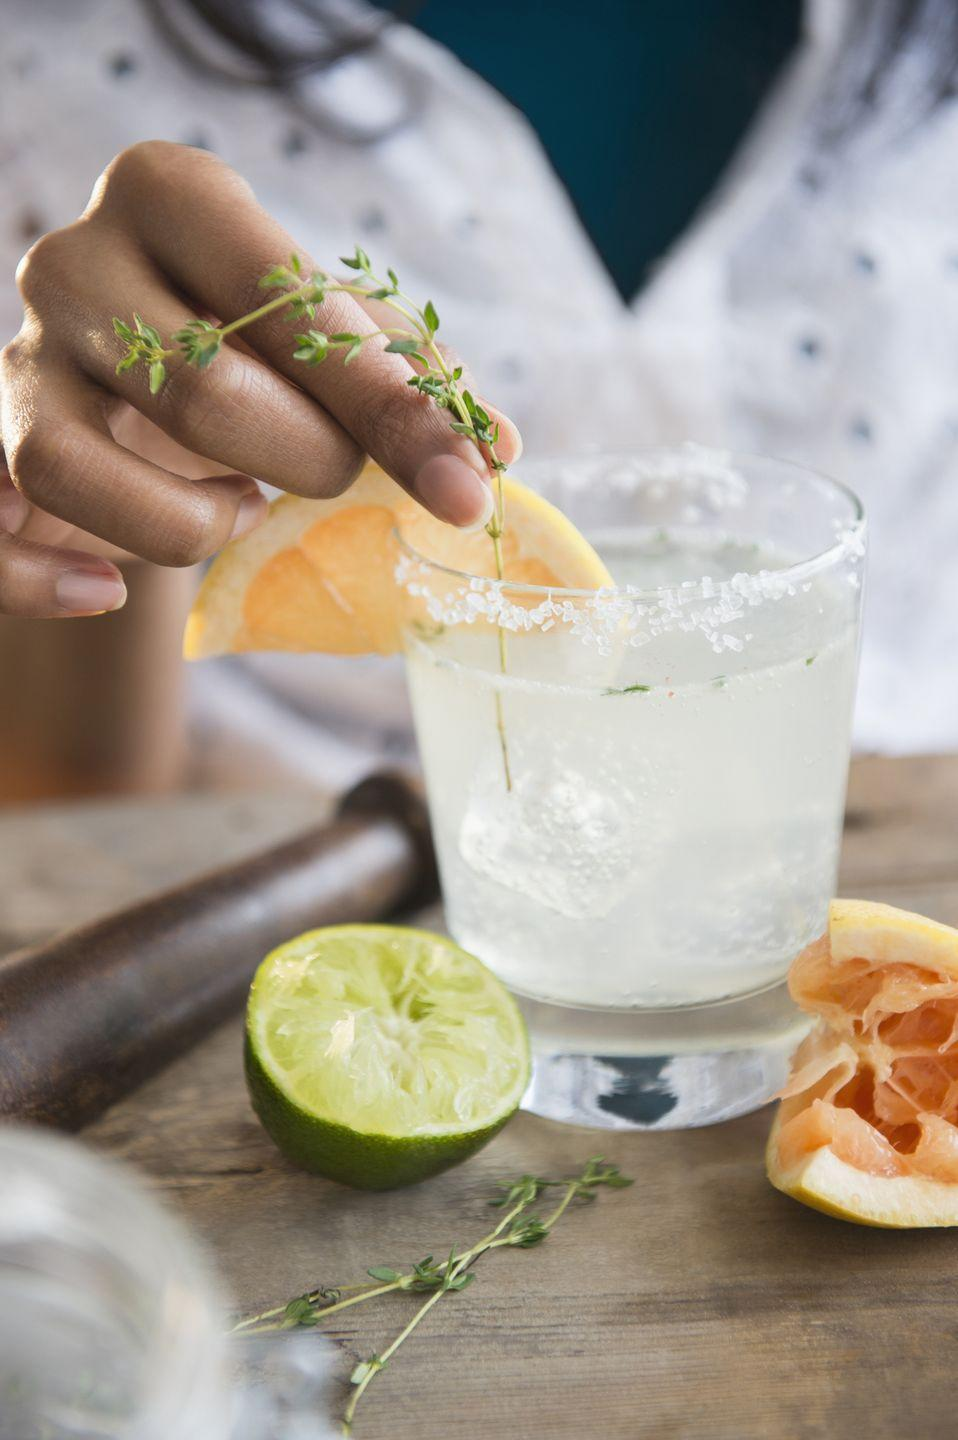 """<p>Whether you prefer a <a href=""""https://www.oprahmag.com/life/g29236880/best-moscow-mule-mugs/"""" rel=""""nofollow noopener"""" target=""""_blank"""" data-ylk=""""slk:Moscow mule"""" class=""""link rapid-noclick-resp"""">Moscow mule</a> or a <a href=""""https://www.oprahmag.com/life/food/g28099287/fall-cocktails/"""" rel=""""nofollow noopener"""" target=""""_blank"""" data-ylk=""""slk:fall-inspired cocktail"""" class=""""link rapid-noclick-resp"""">fall-inspired cocktail</a> like a cranberry orange margarita, it's fun to play mixologist for the night. </p>"""